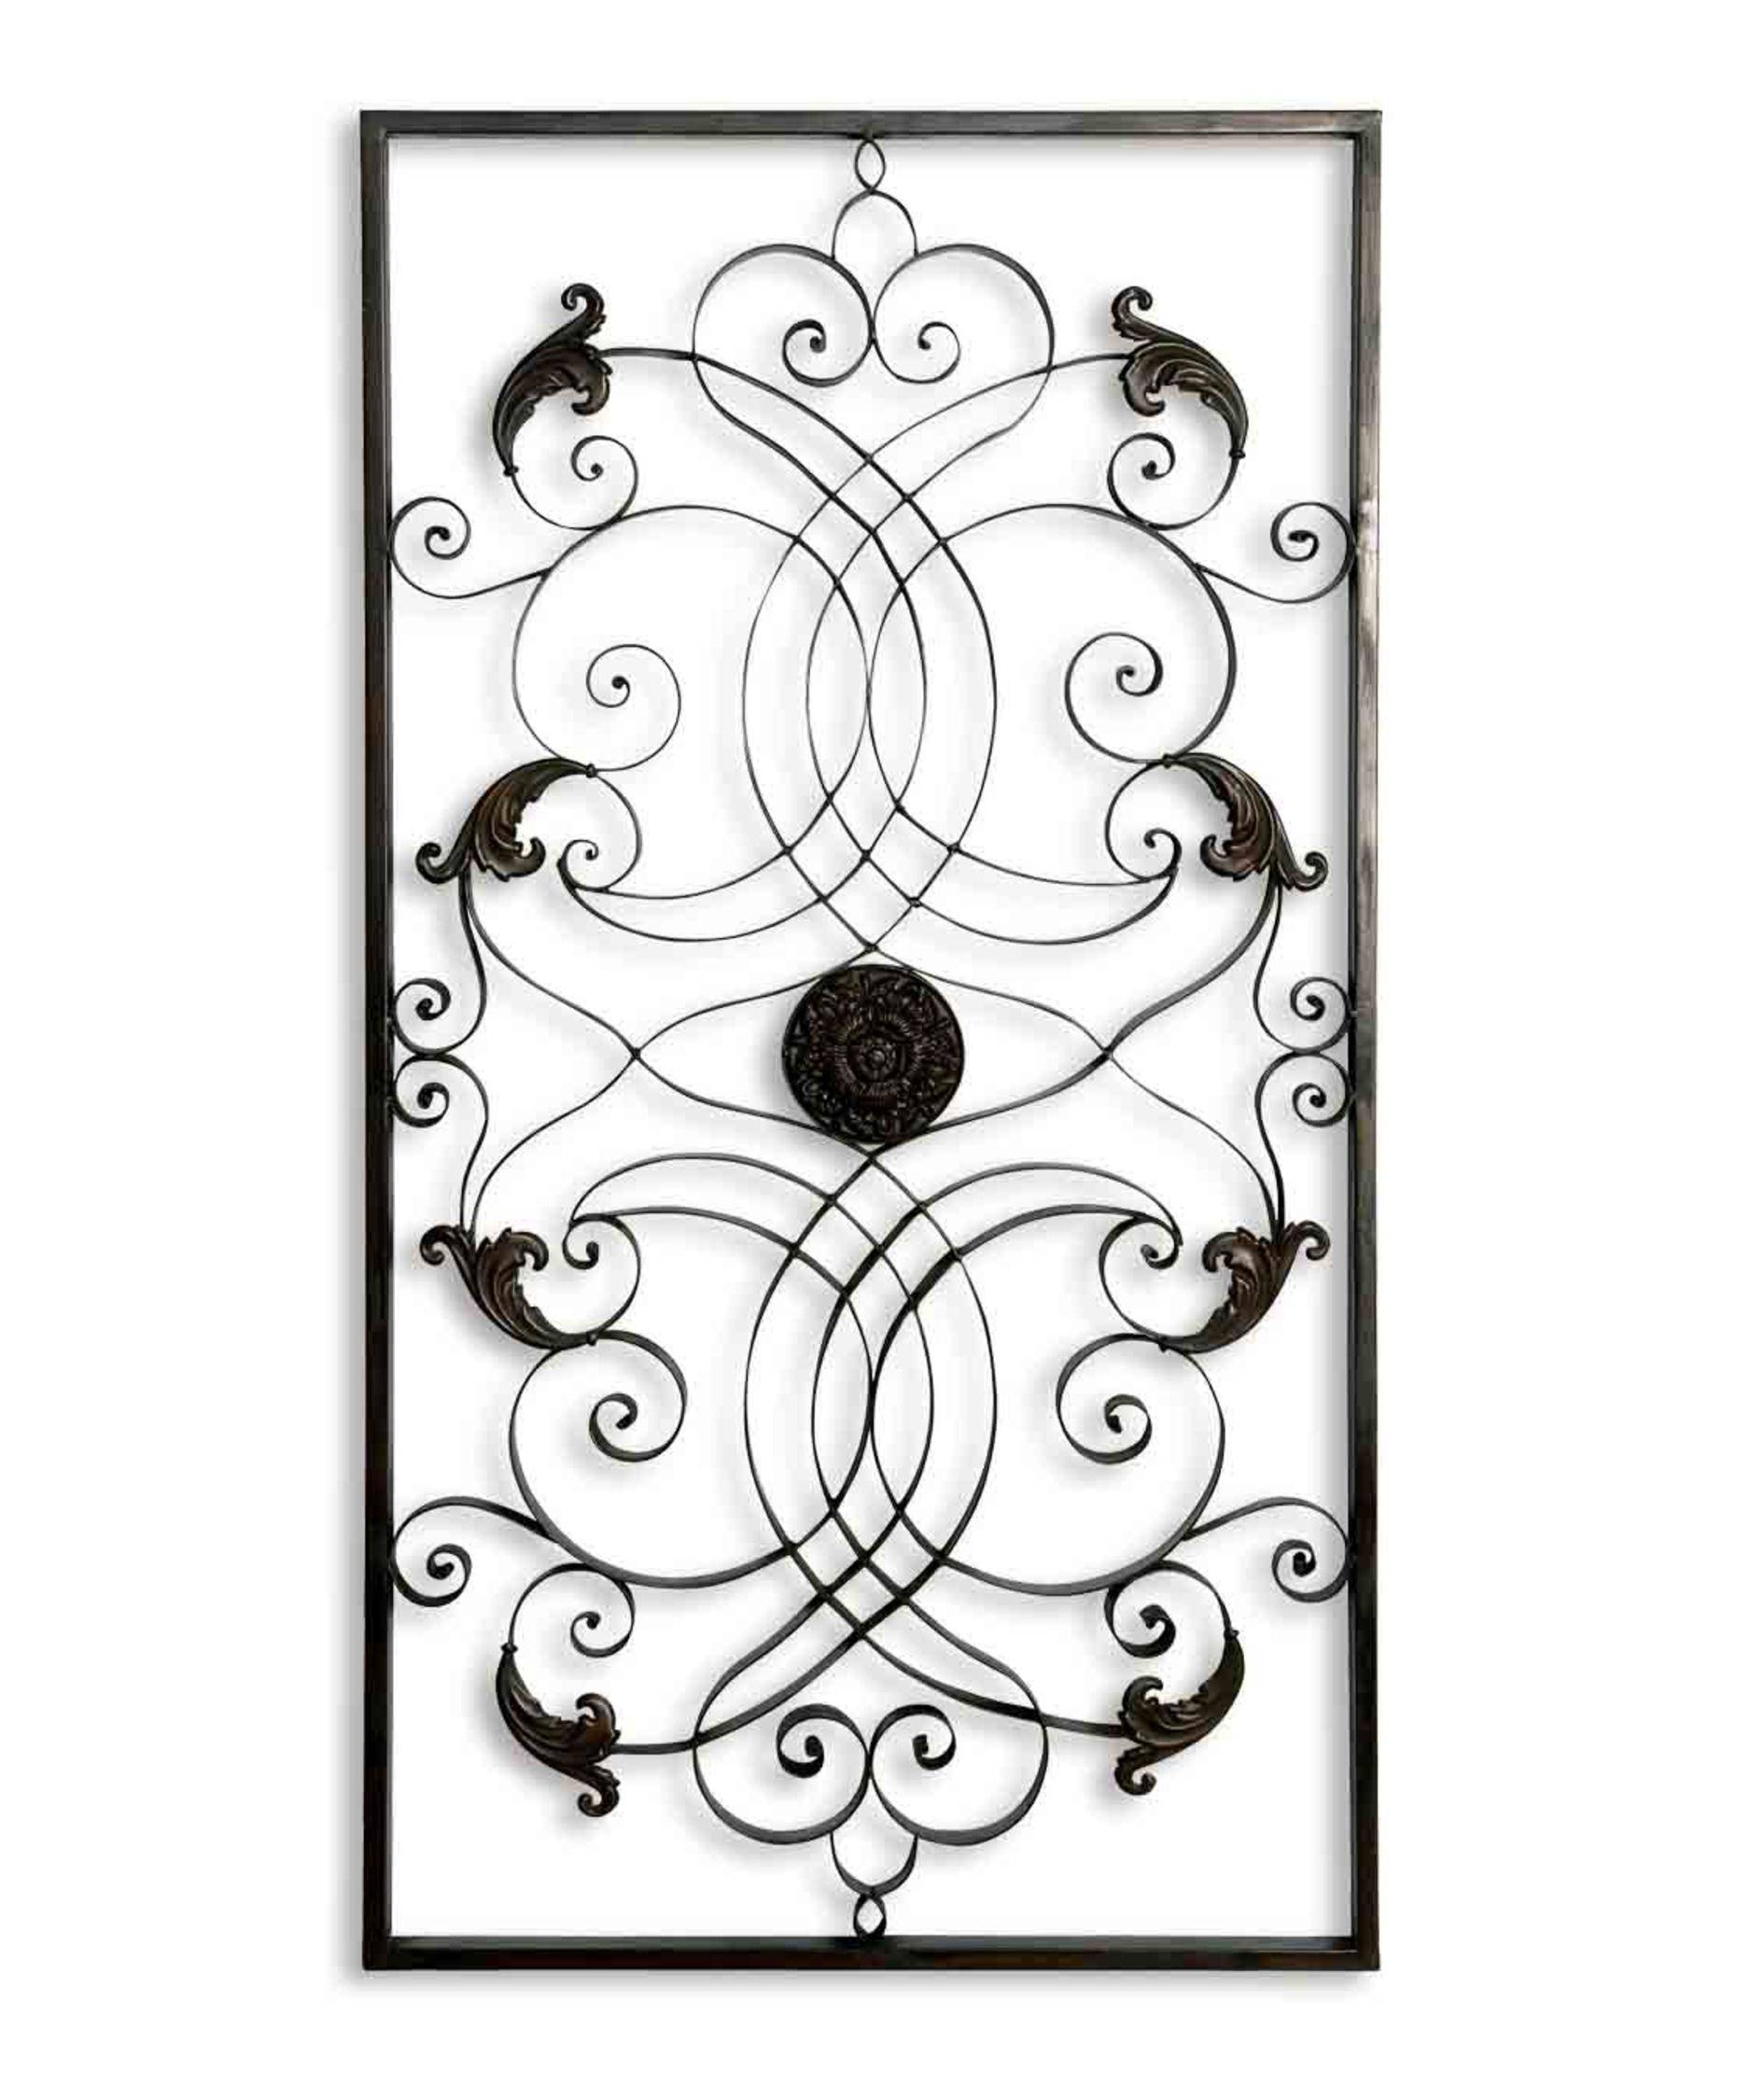 Uttermost 07527 Effie Alternative Wall Art | Capitol Lighting 1 Intended For Most Popular Uttermost Metal Wall Art (View 18 of 20)